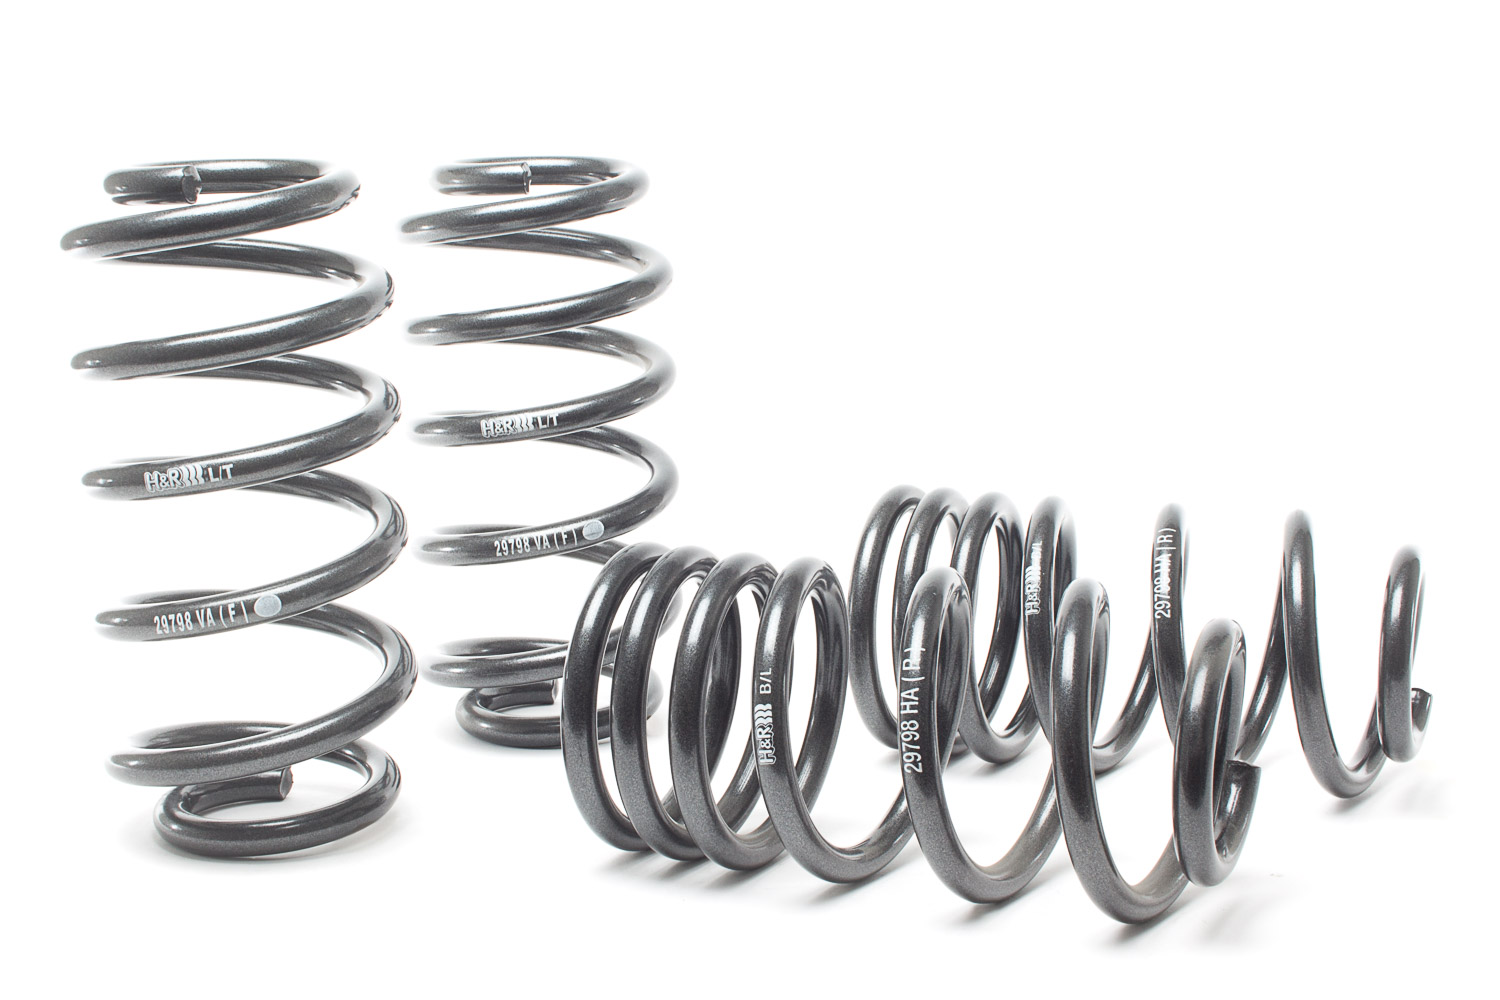 H&R  29996-2 Performance Spring Set Low-Fitting Springs Car Parts